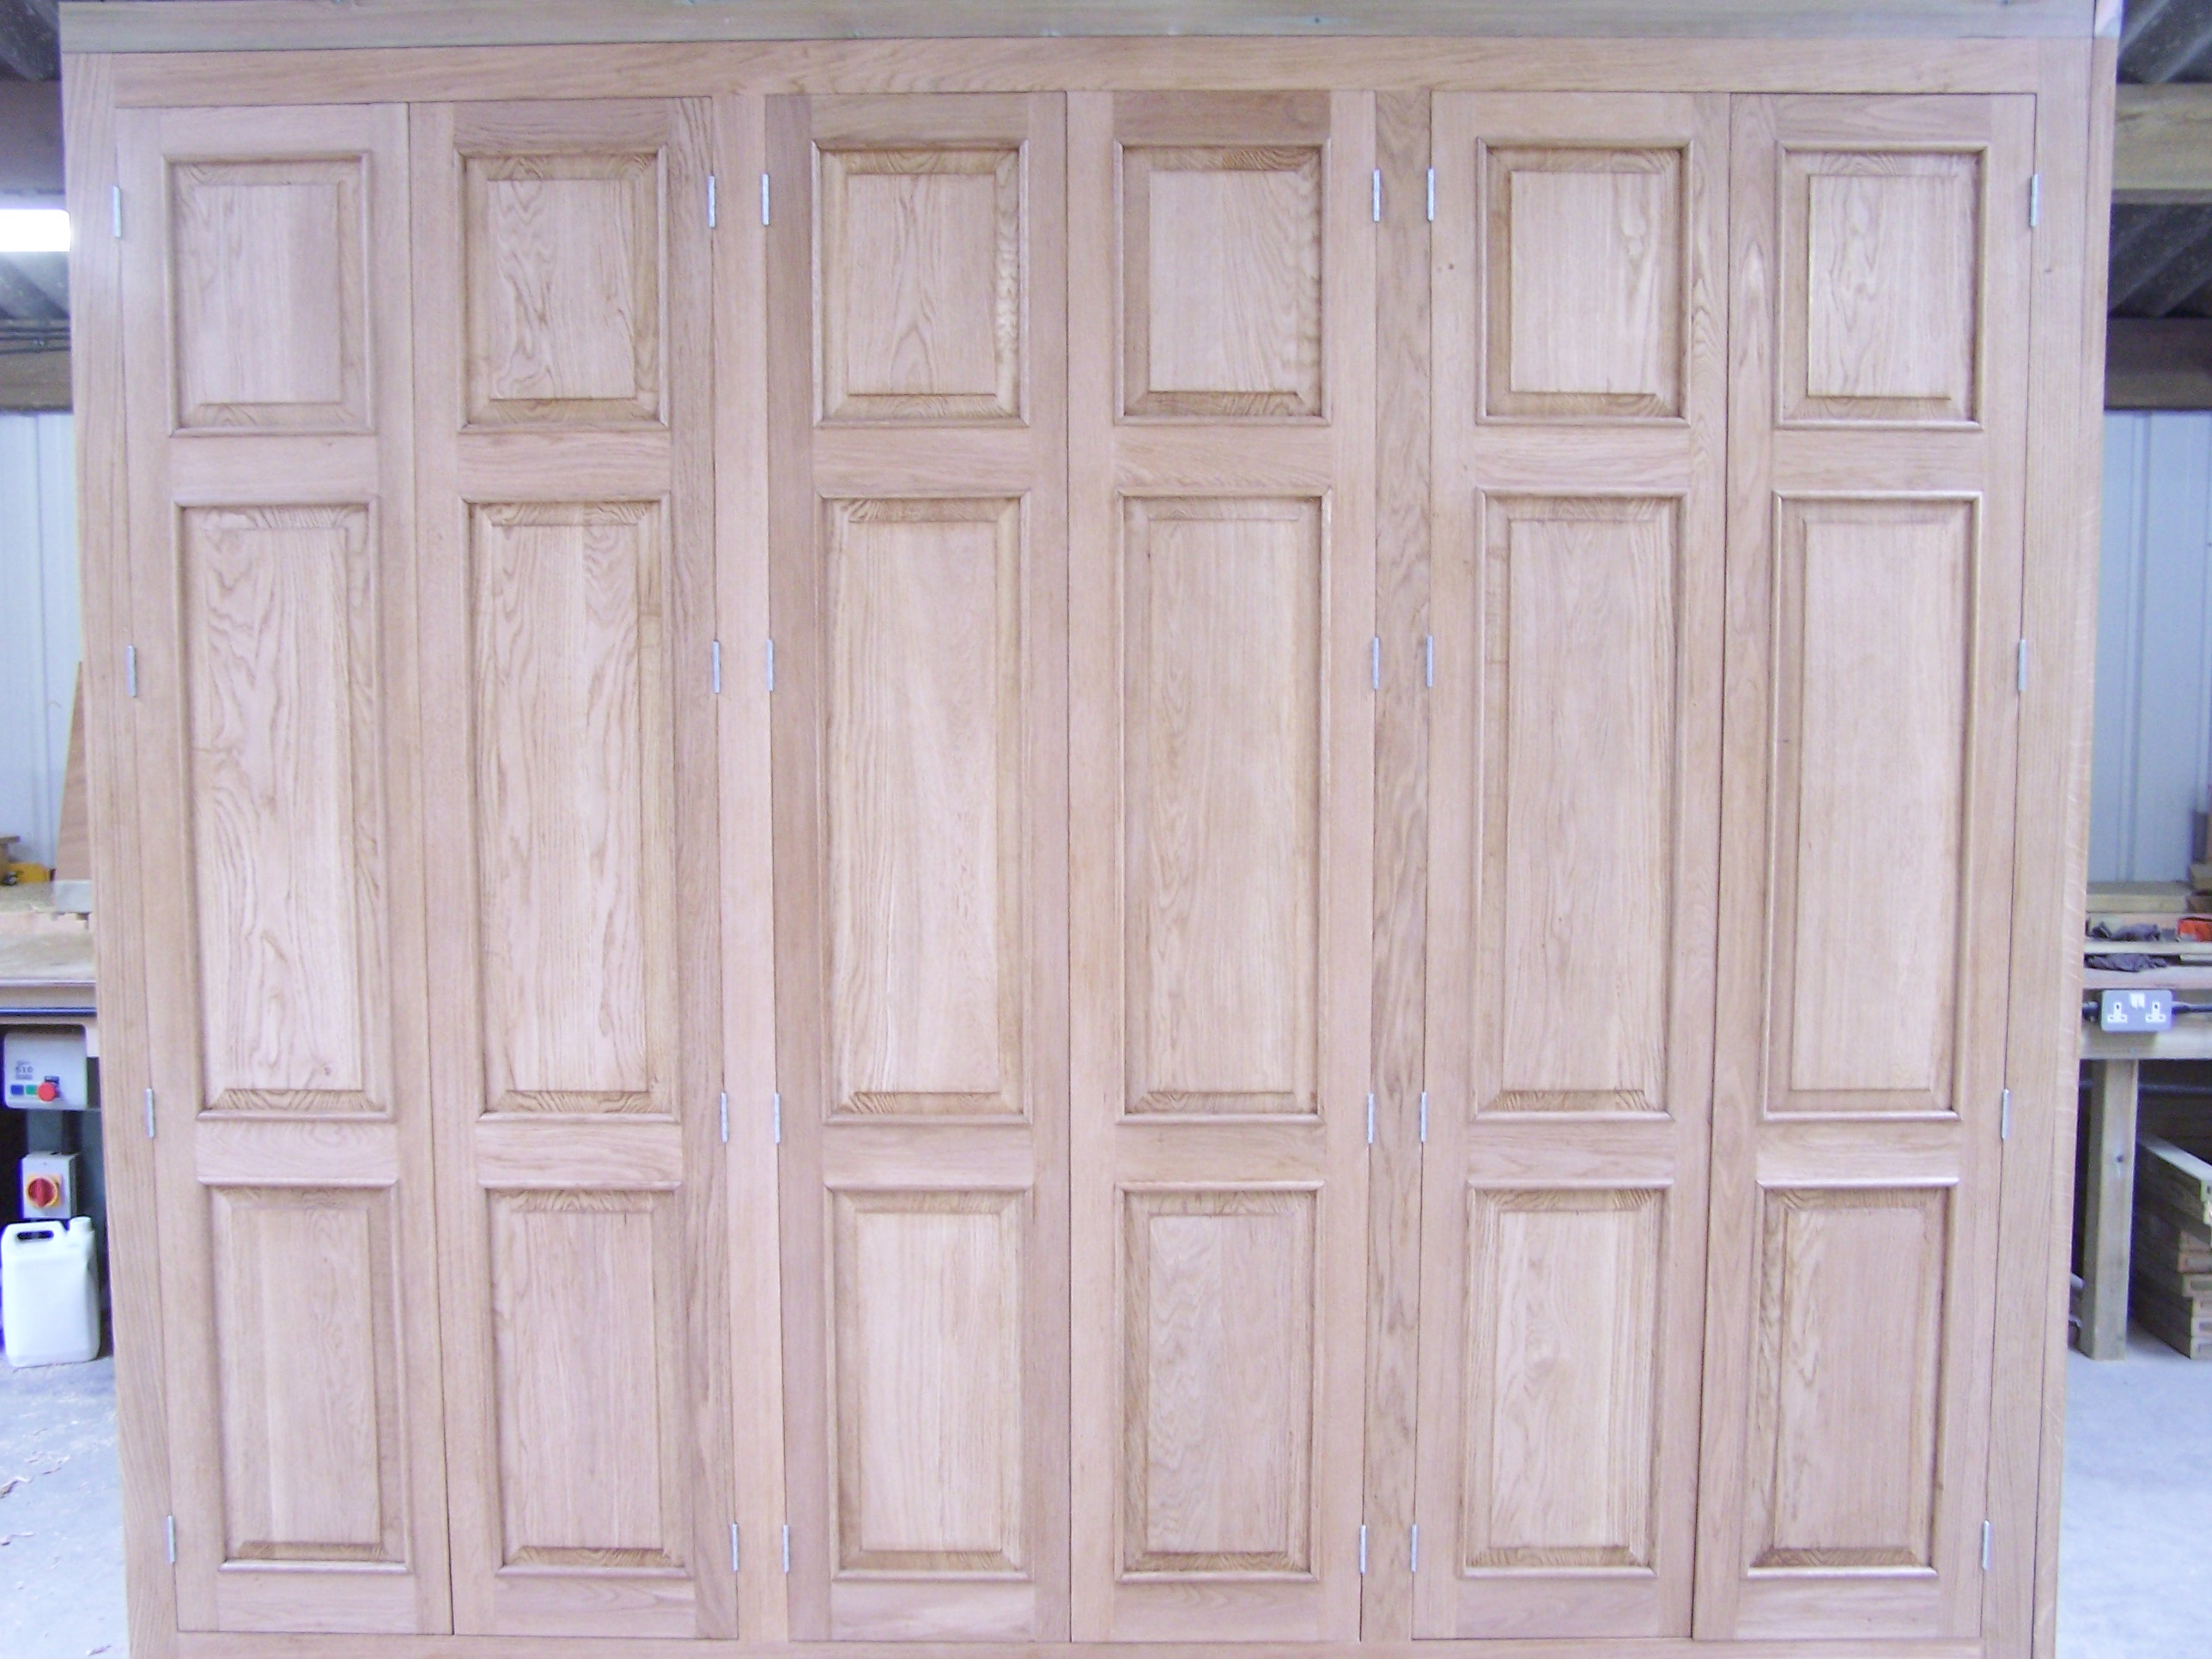 oak-wardrobes